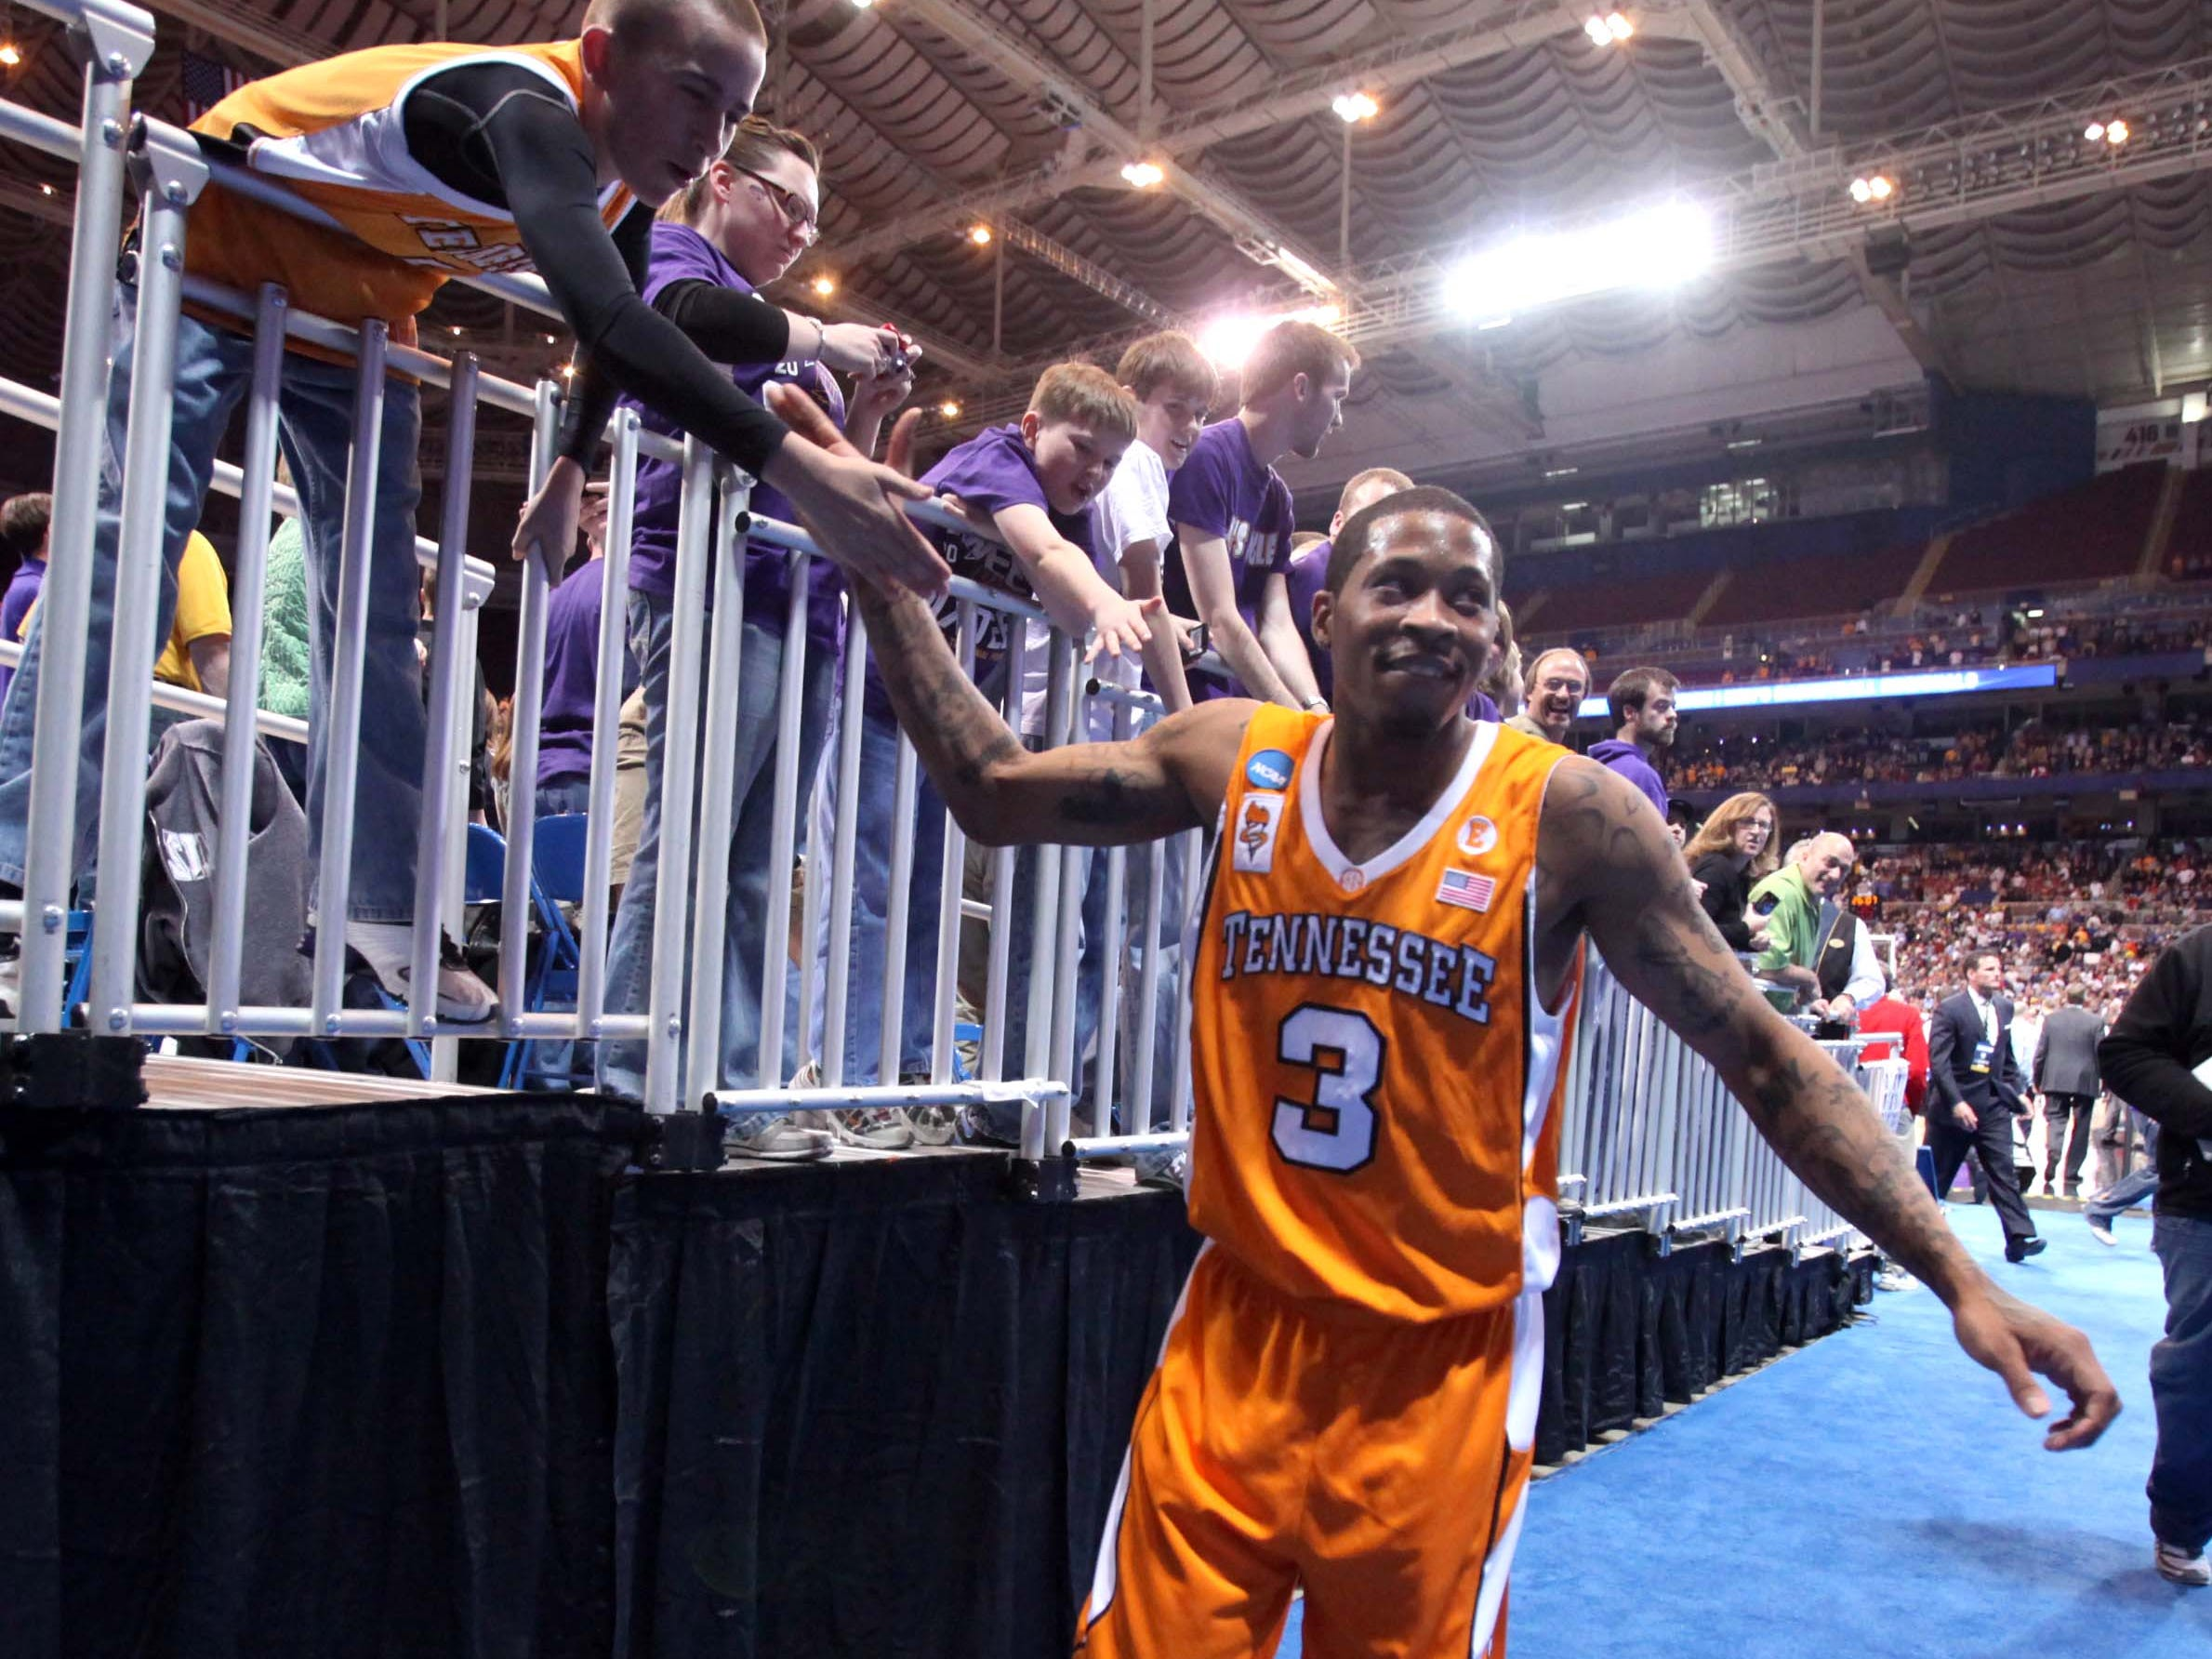 Bobby Maze high-fives a fan after the Vols defeated Ohio State during the NCAA tournament Sweet Sixteen at the Edward Jones Dome in St. Louis, Mo., Friday, Mar. 26, 2010.